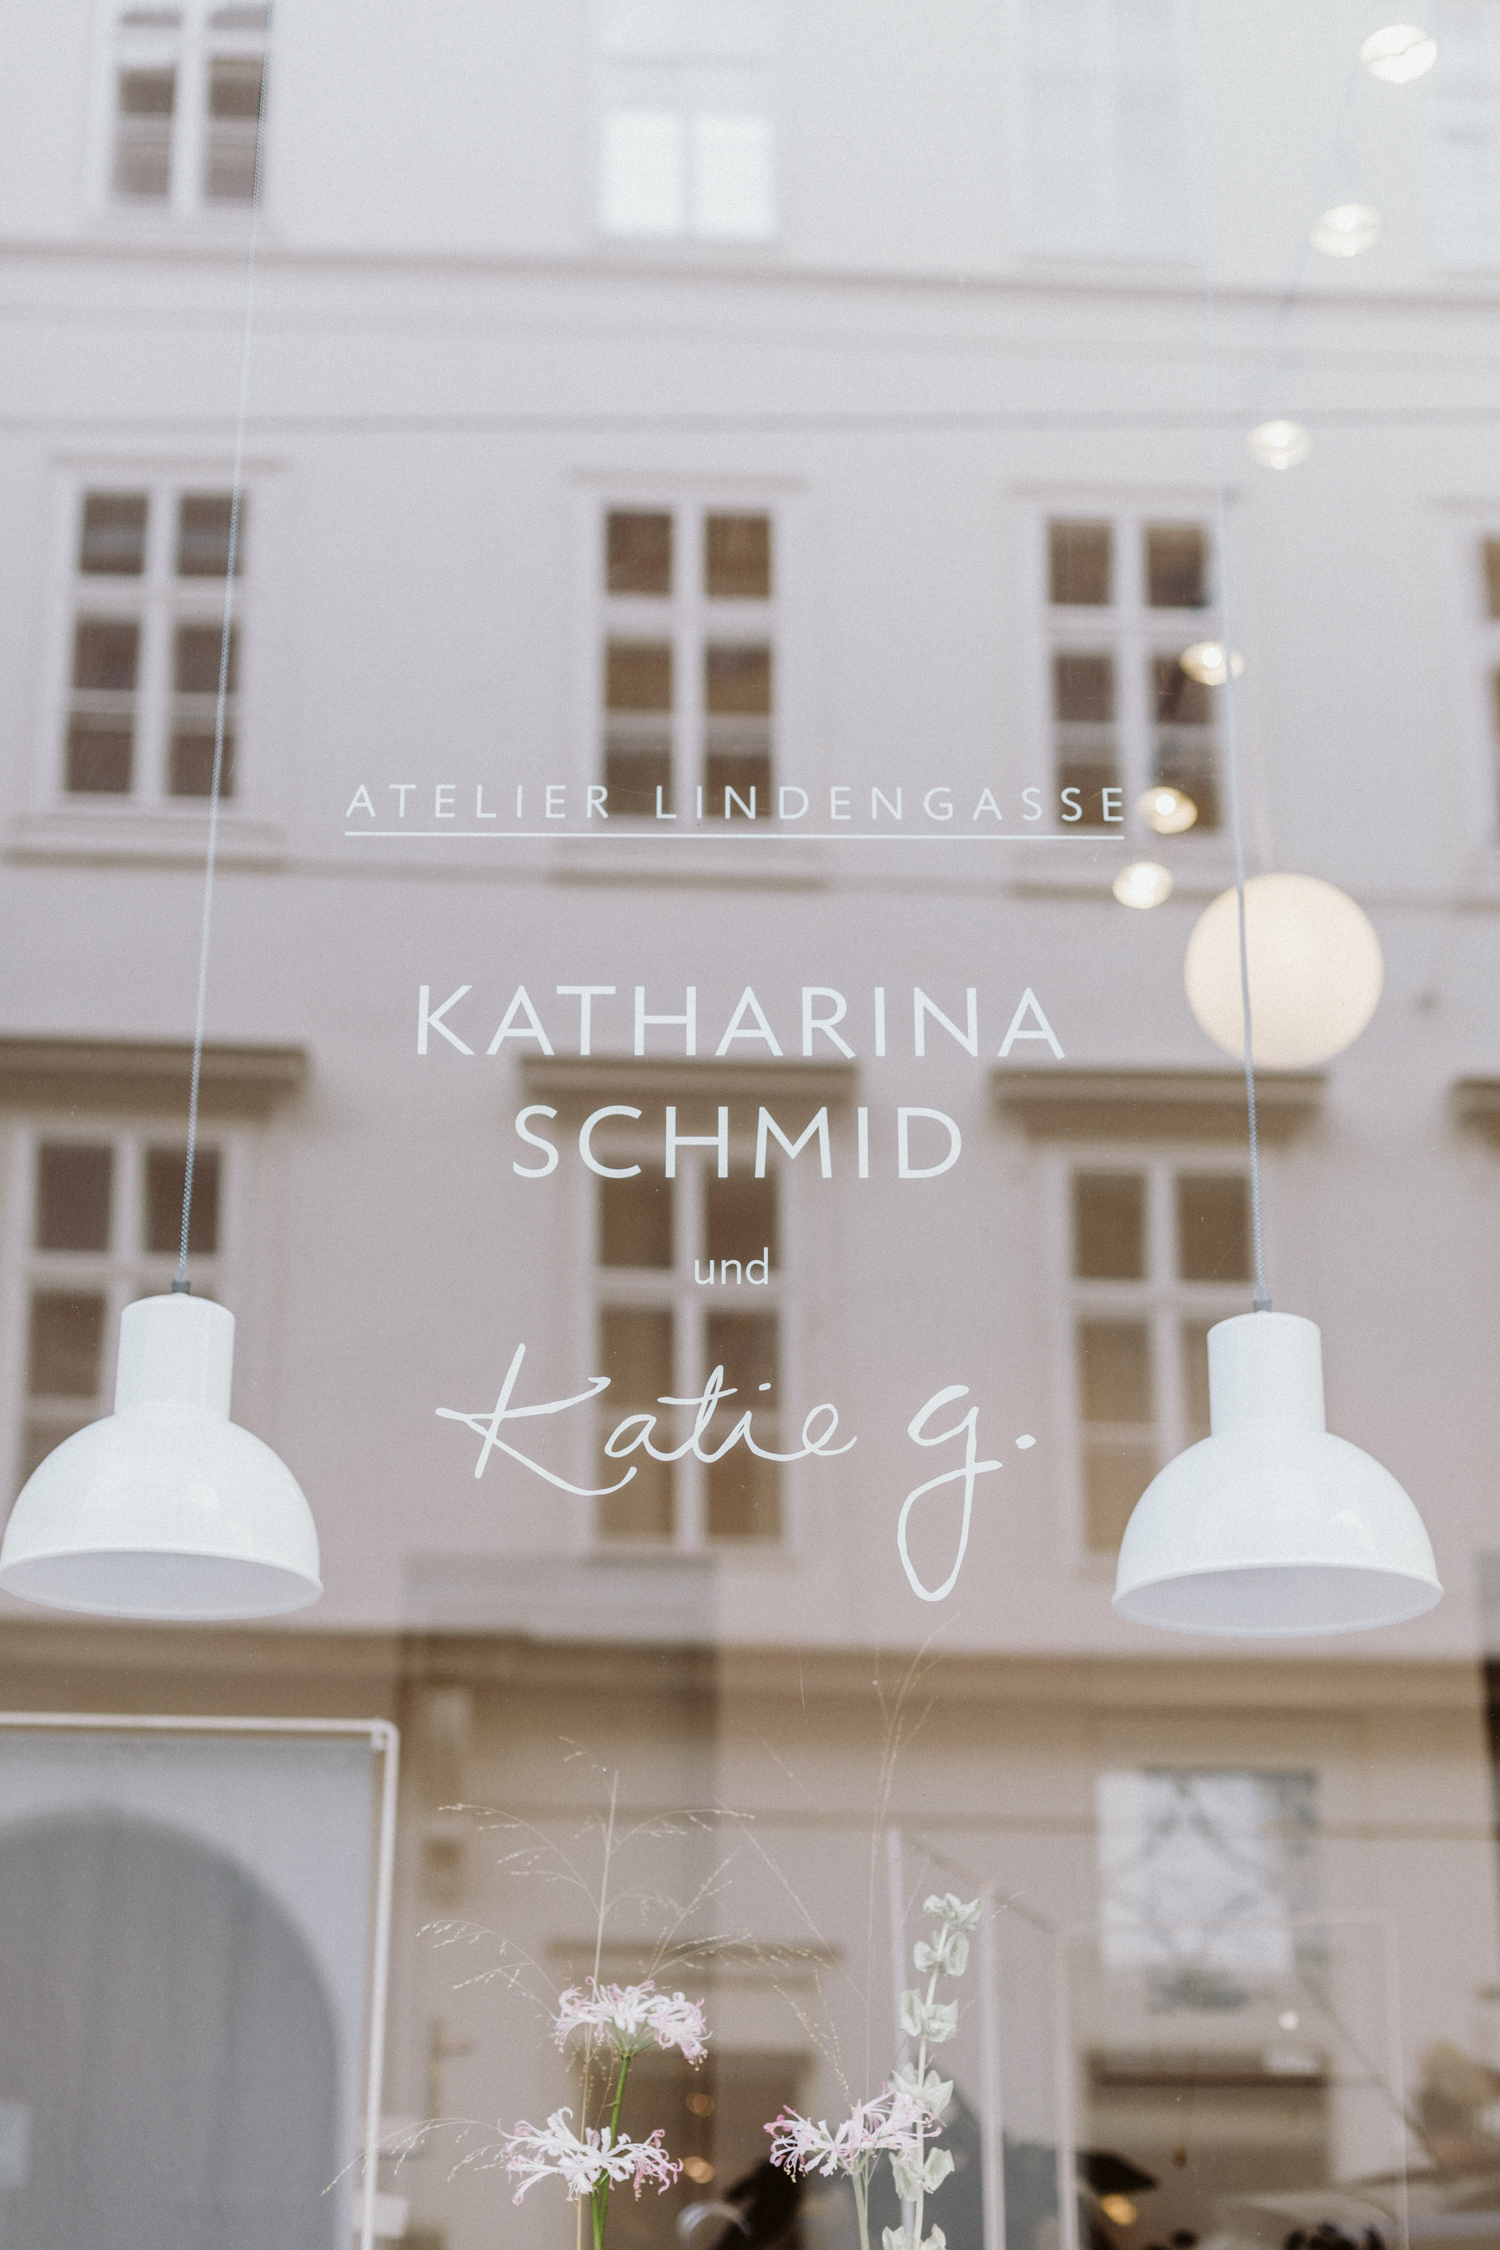 Job Report: Katie G. Schmuck Wien - Love Daily Dose